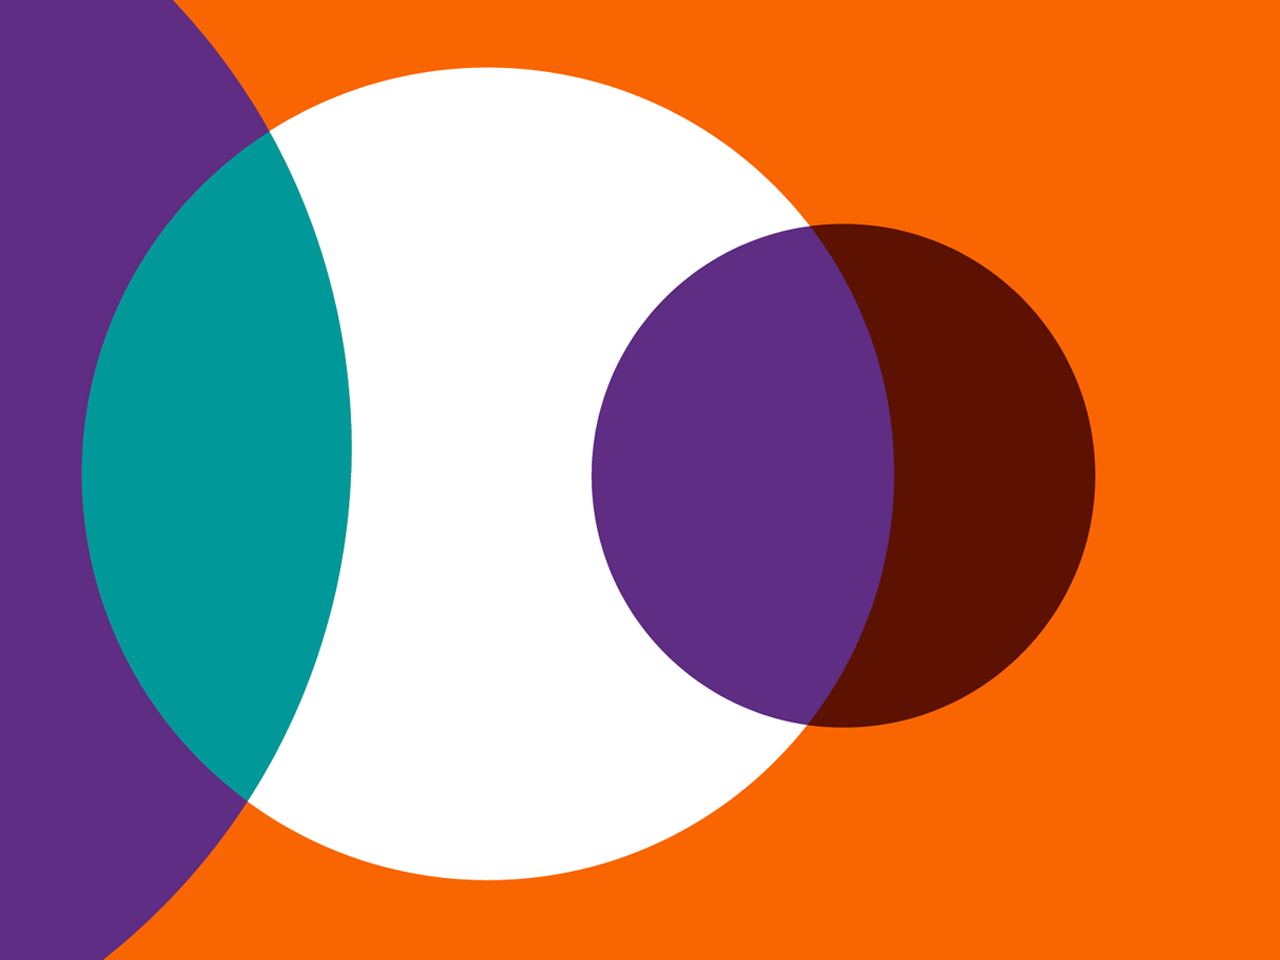 orange background with white and purple and teal overlapping circles